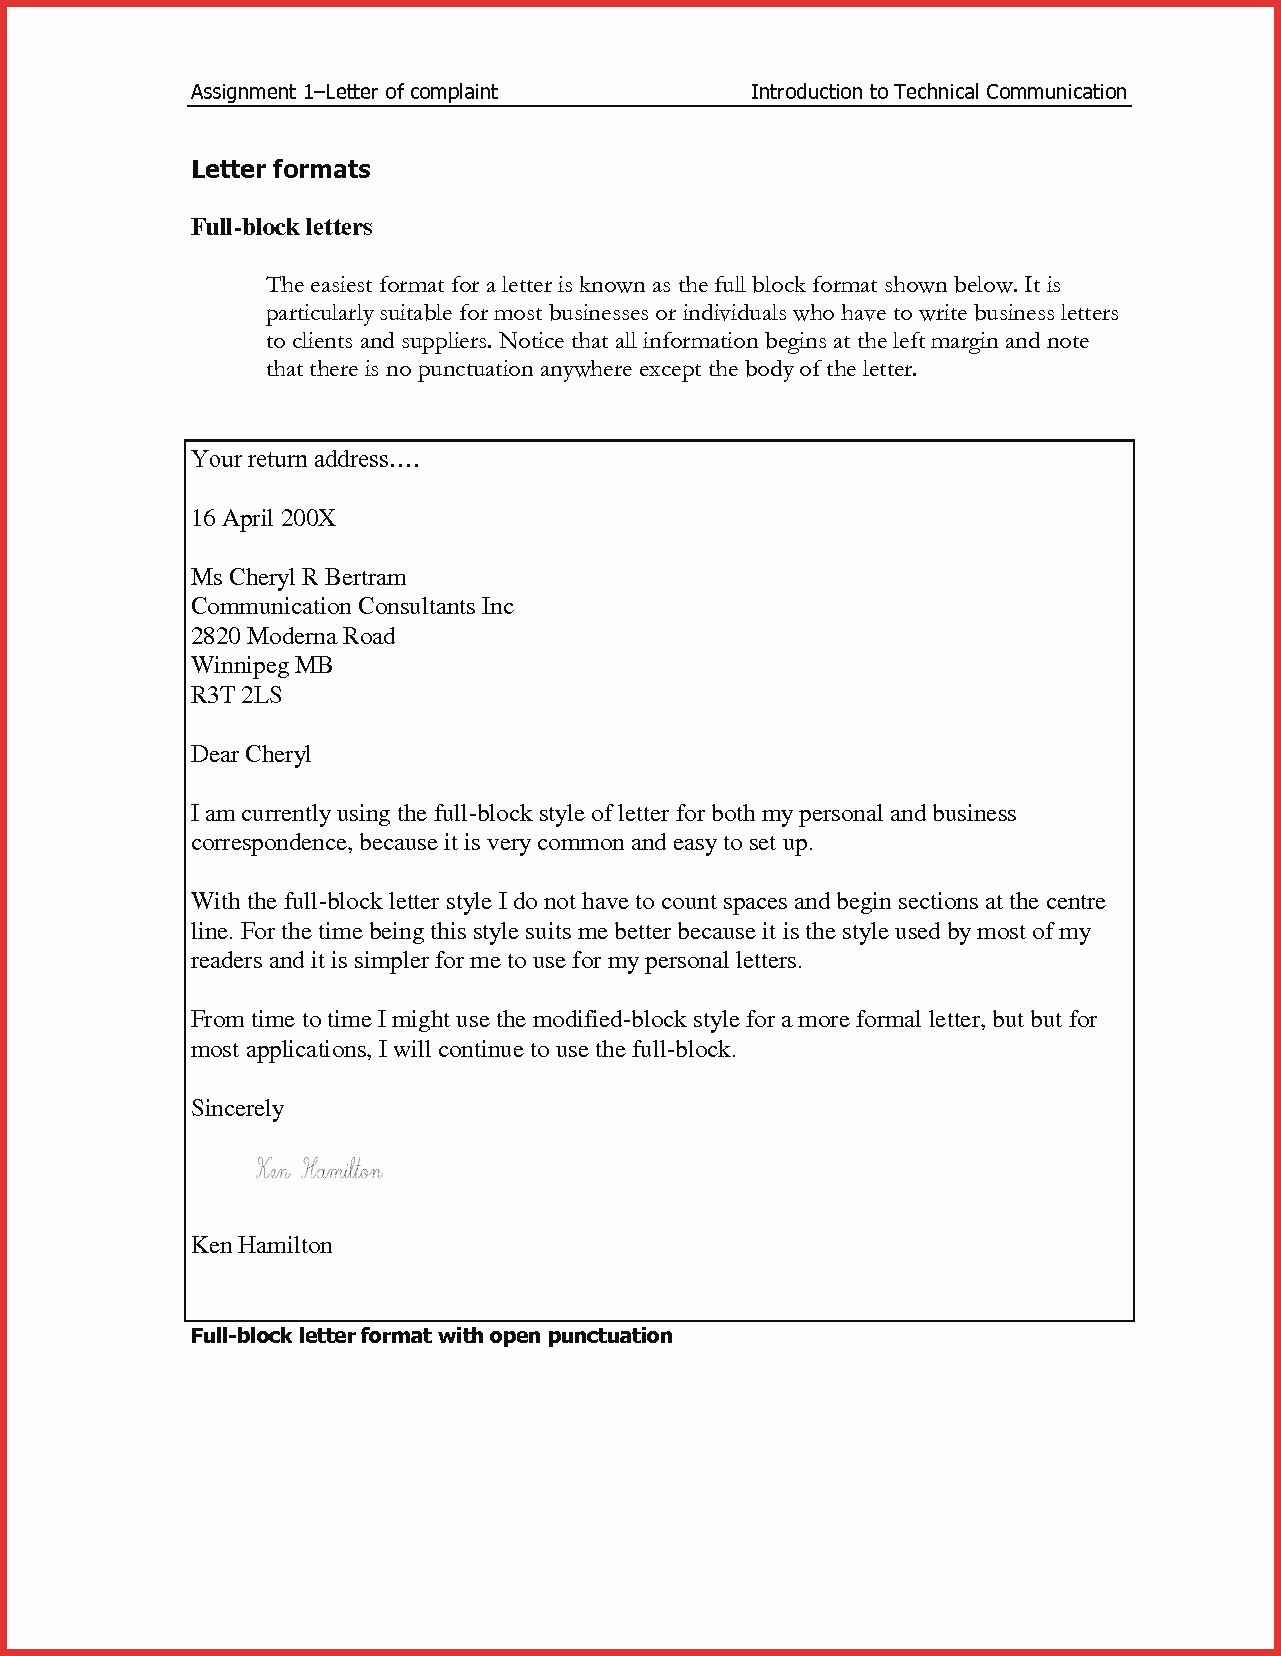 Blocked Style Letter format Lovely Business Letter Full Block Image Collections Download Cv